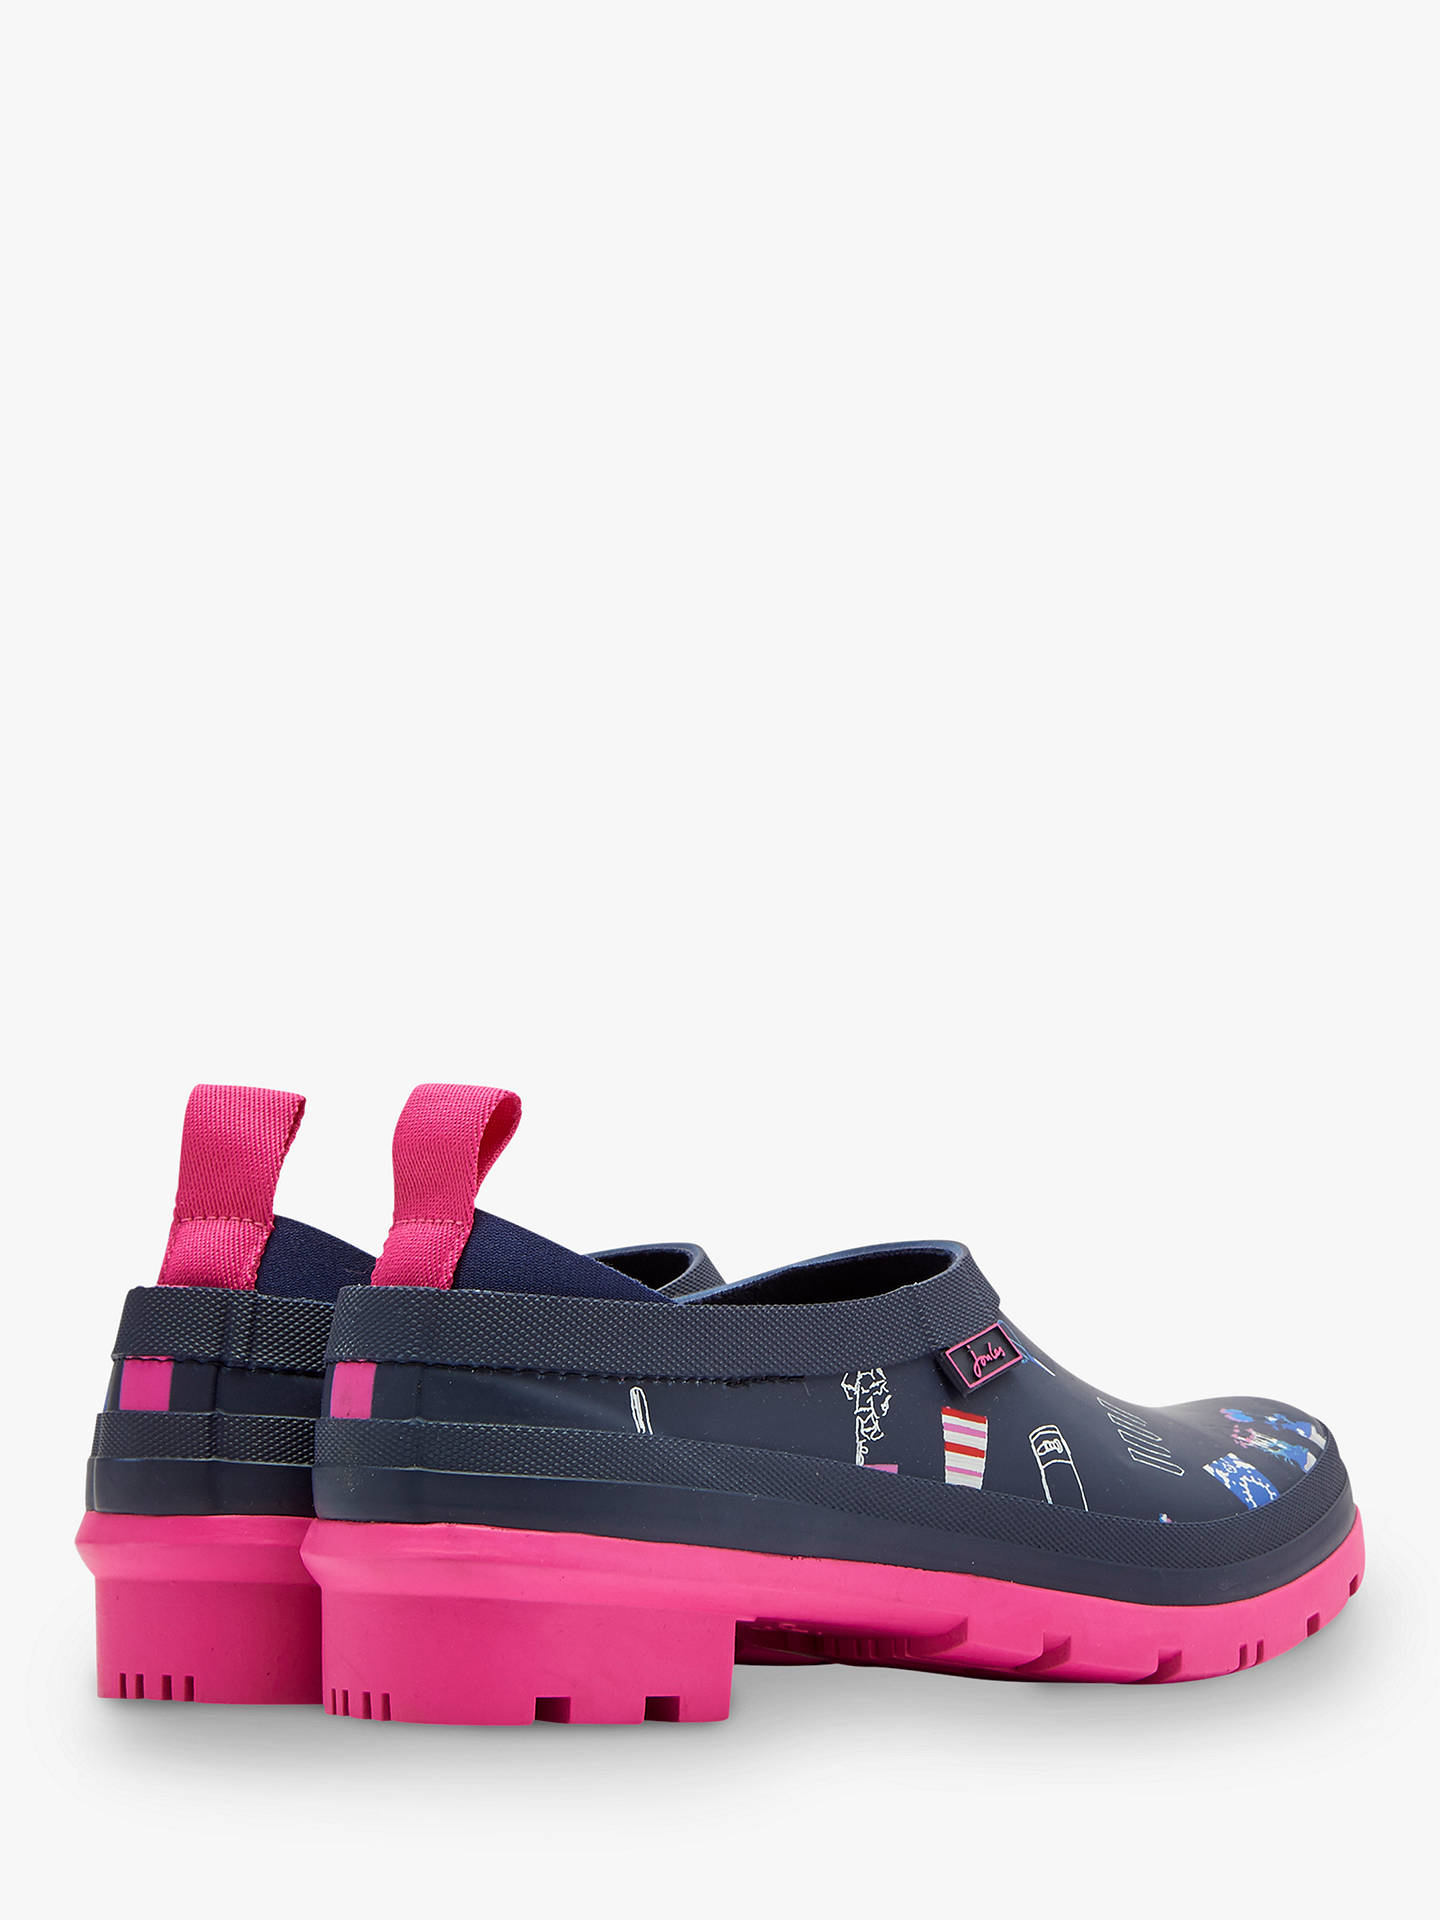 Buy Joules Pop On Waterproof Low Wellington Boots, Navy Garden, 8 Online at johnlewis.com